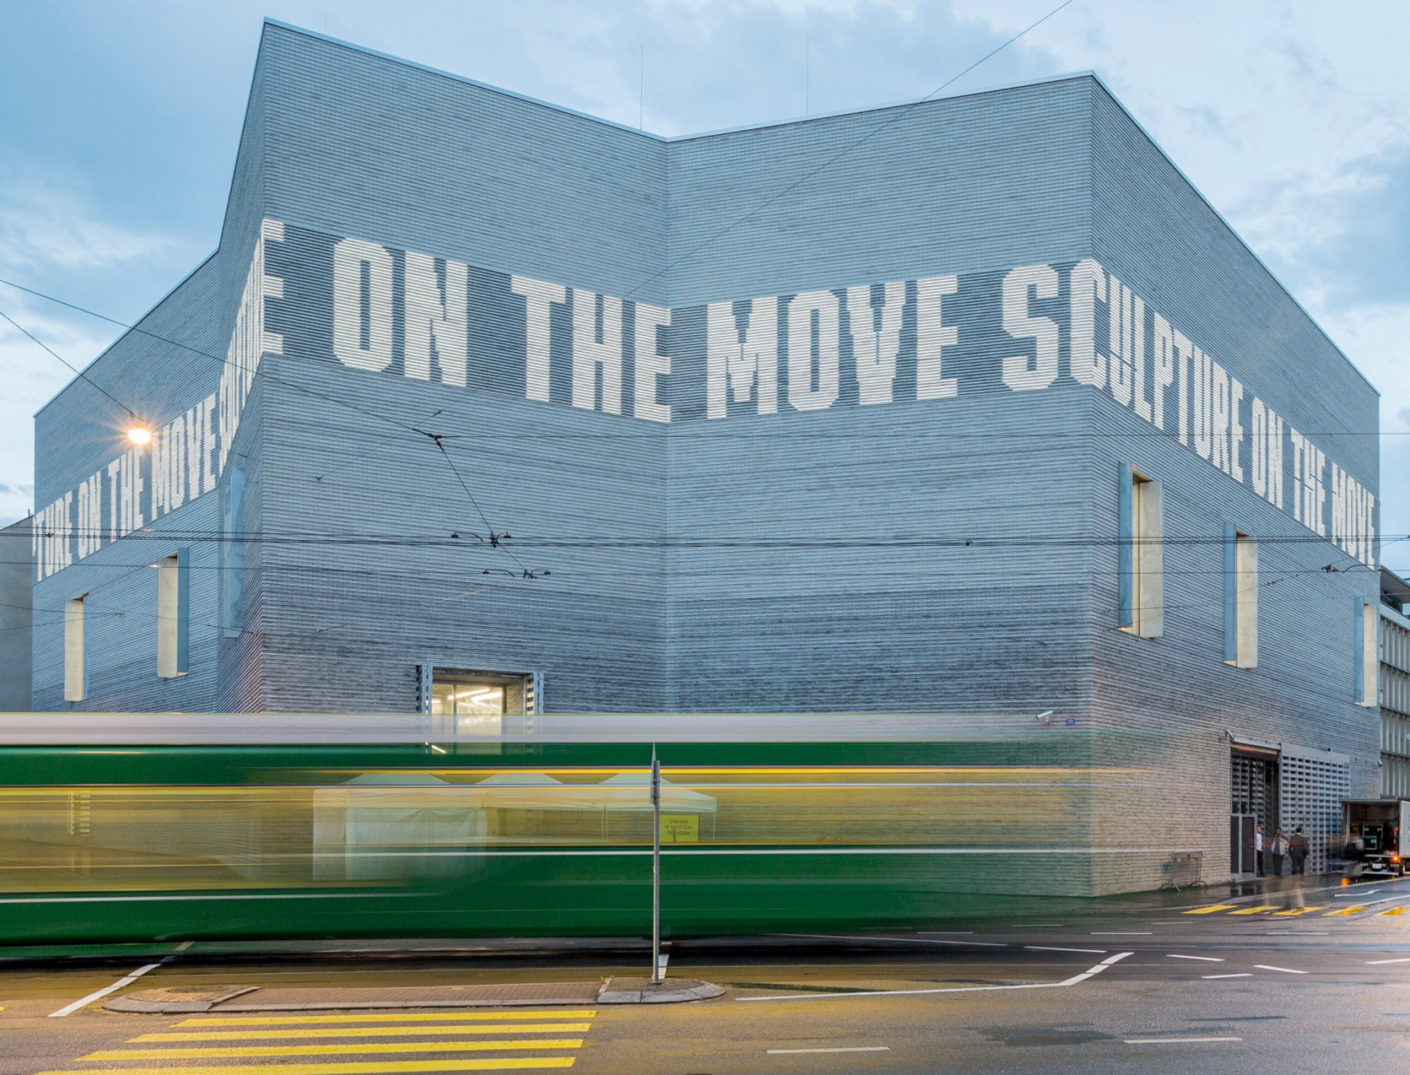 The new Kunstmuseum Basel building presents itself as a cooler, modern version of the main edifice and establishes a dialog between tradition and present for the world's oldest municipal art collection.